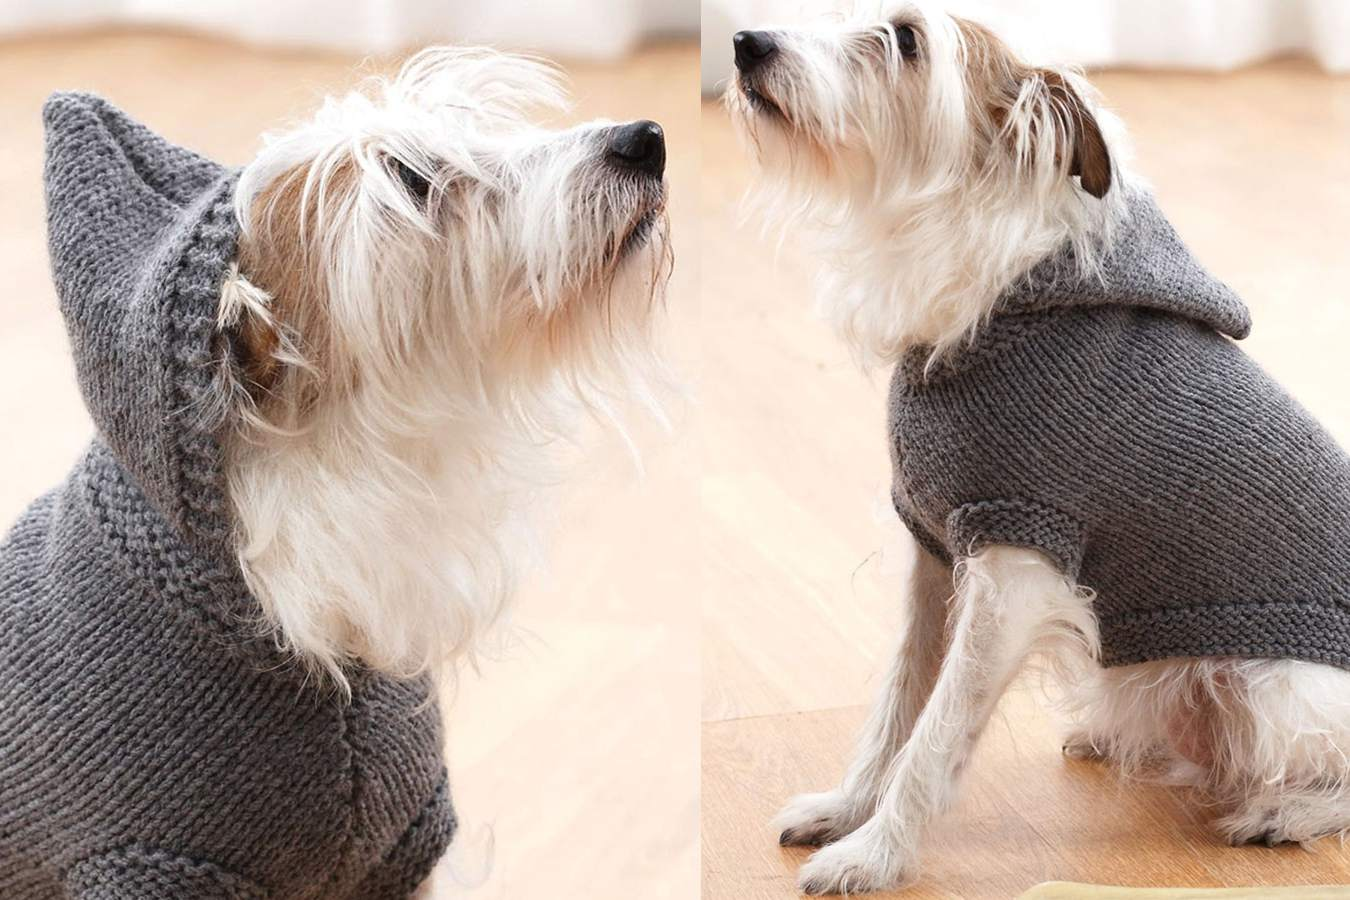 12 Dog Sweaters and Other Knitting Patterns for Pups